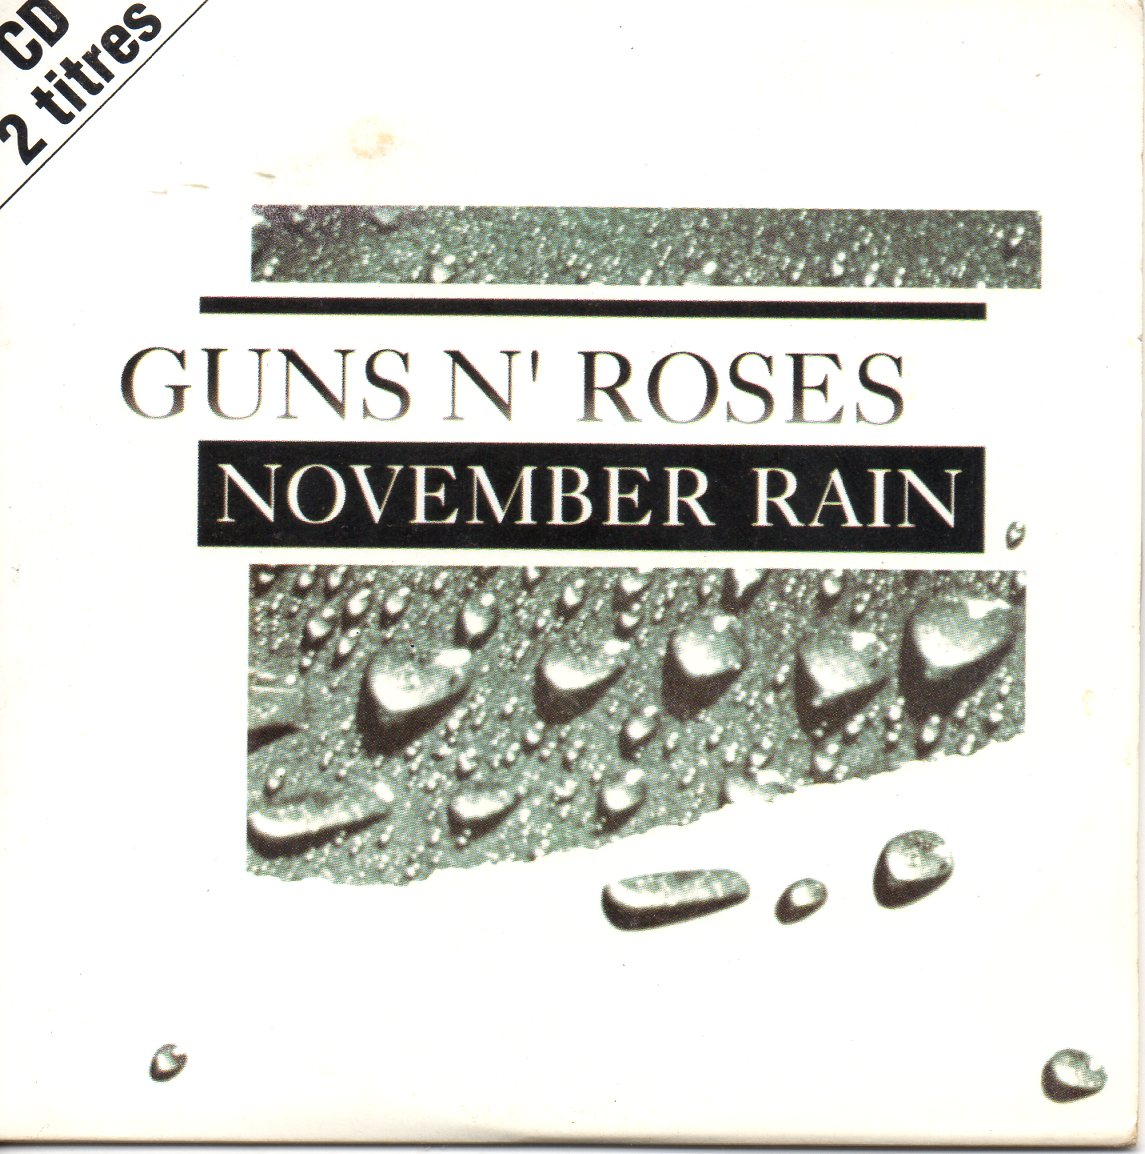 GUNS N' ROSES - November rain 2-Track CARD SLEEVE - CD single